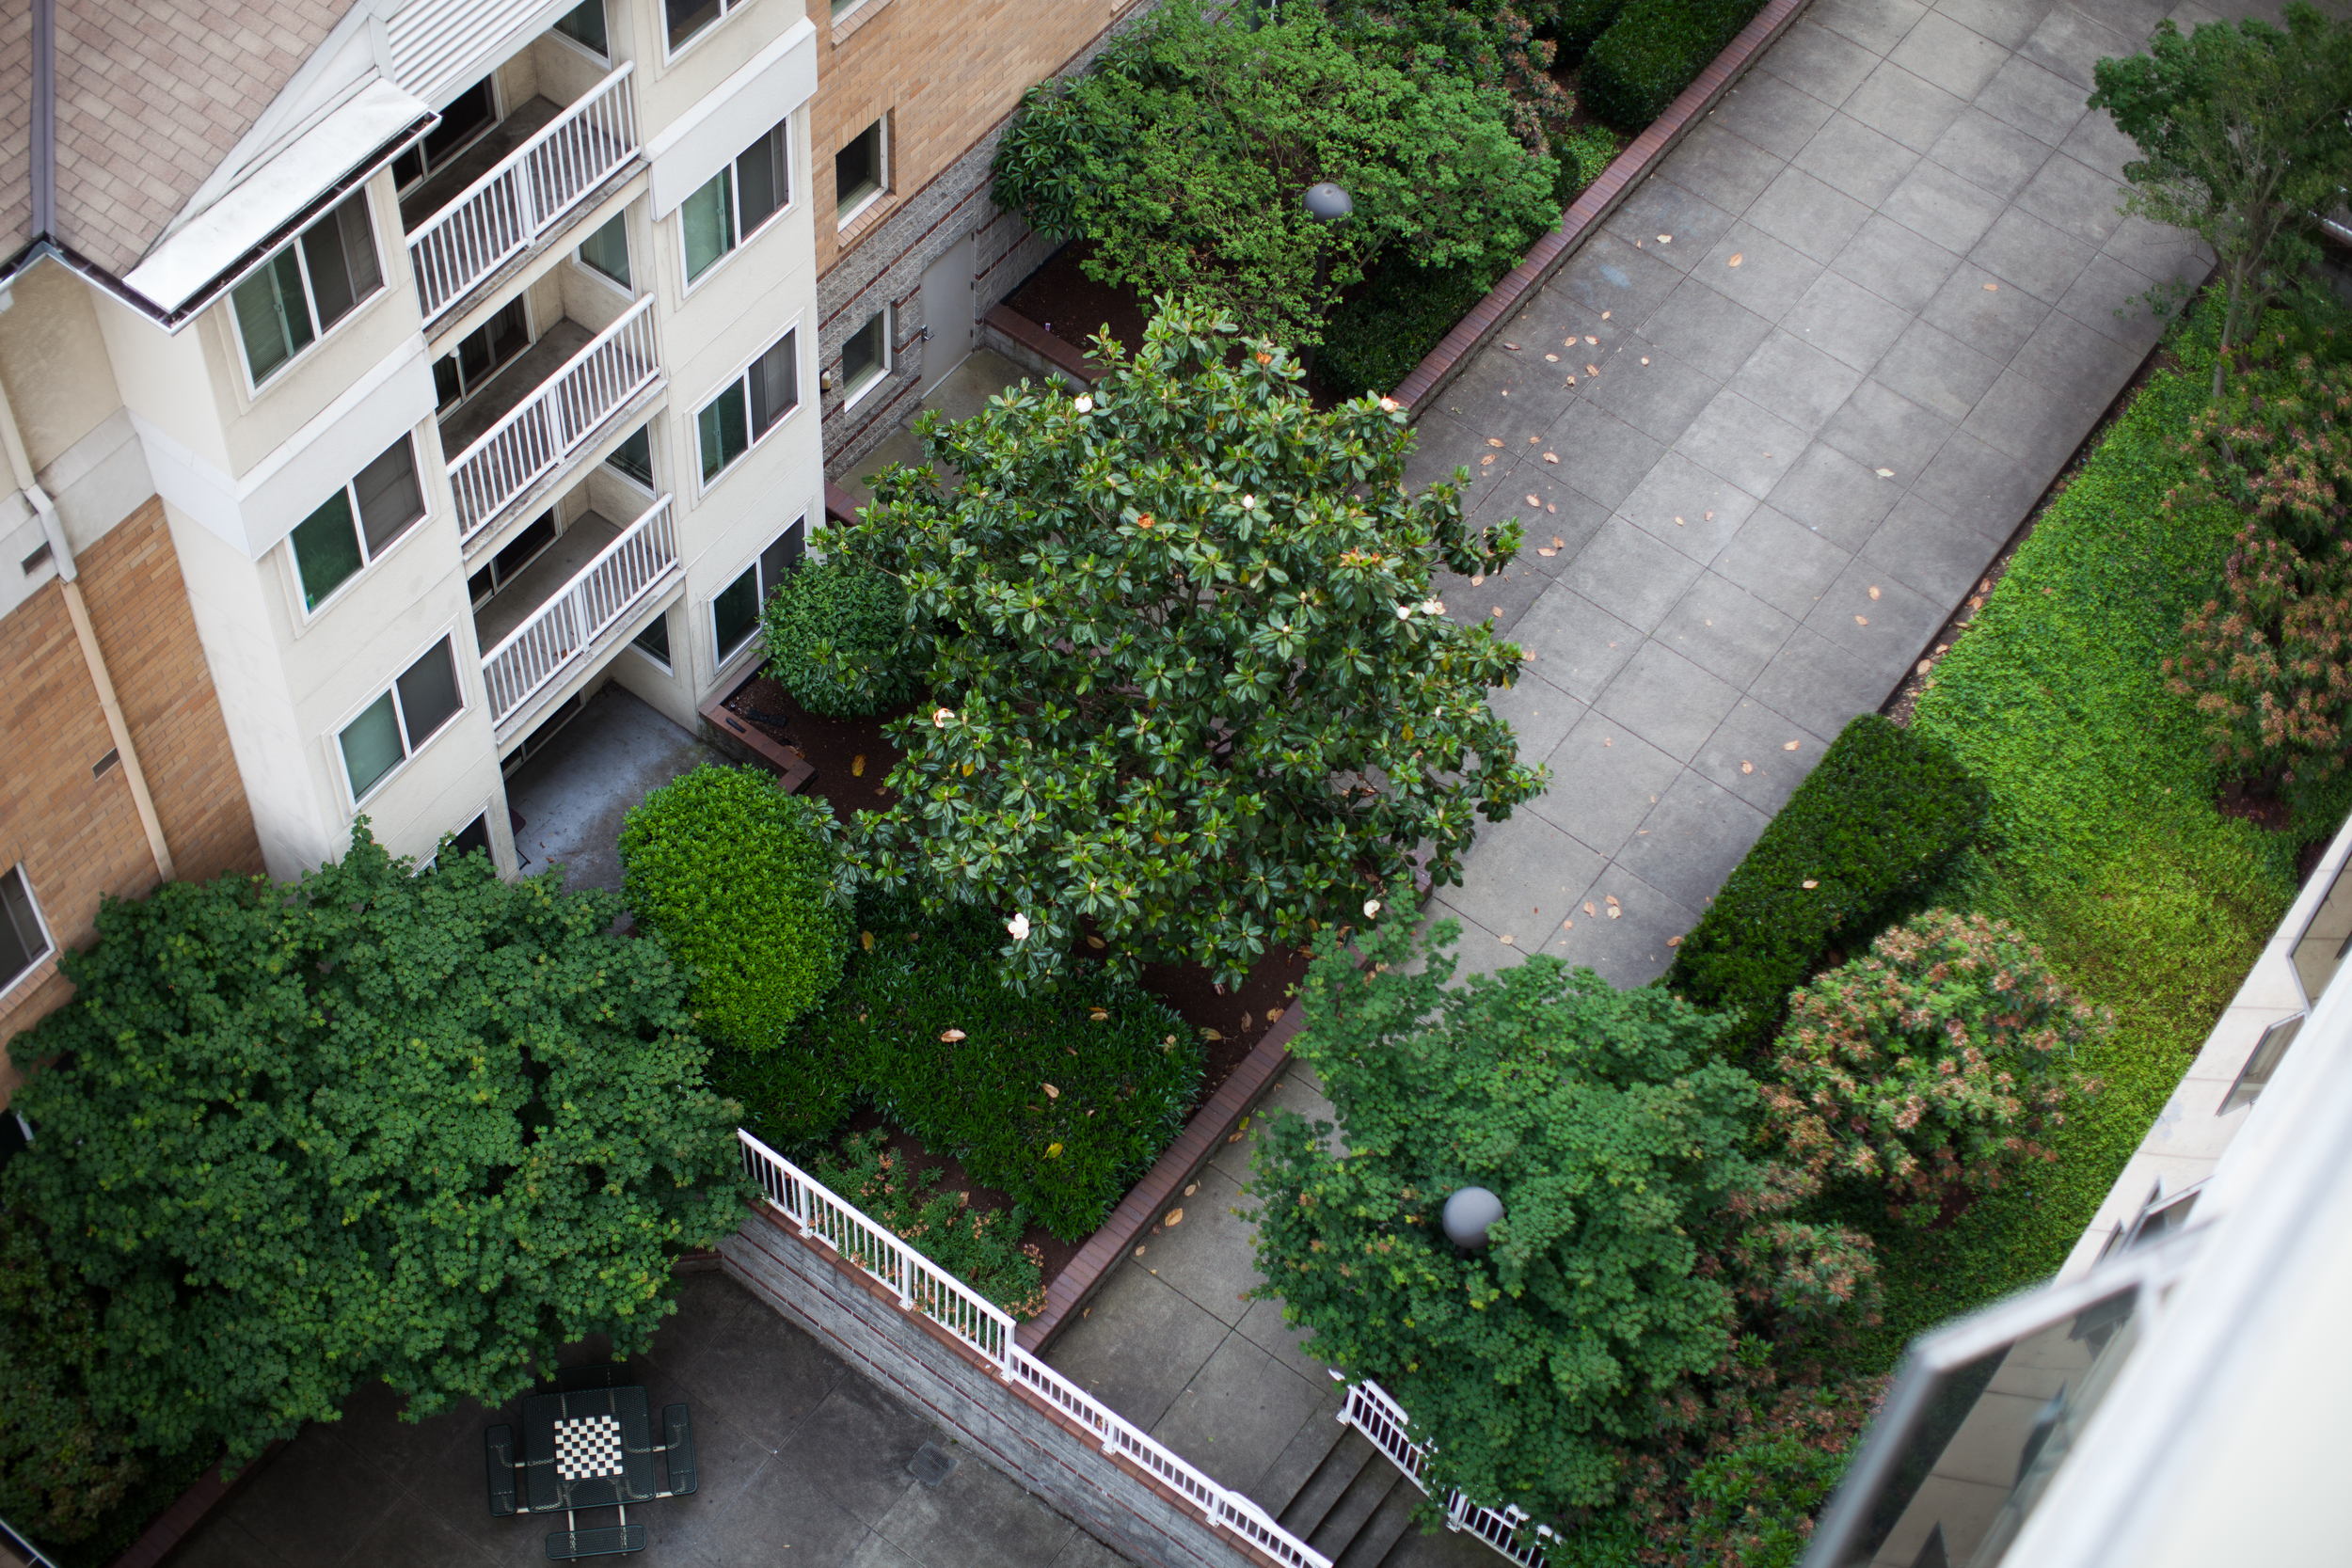 A view from the Goose Hollow Tower into the courtyard for use on their new website.